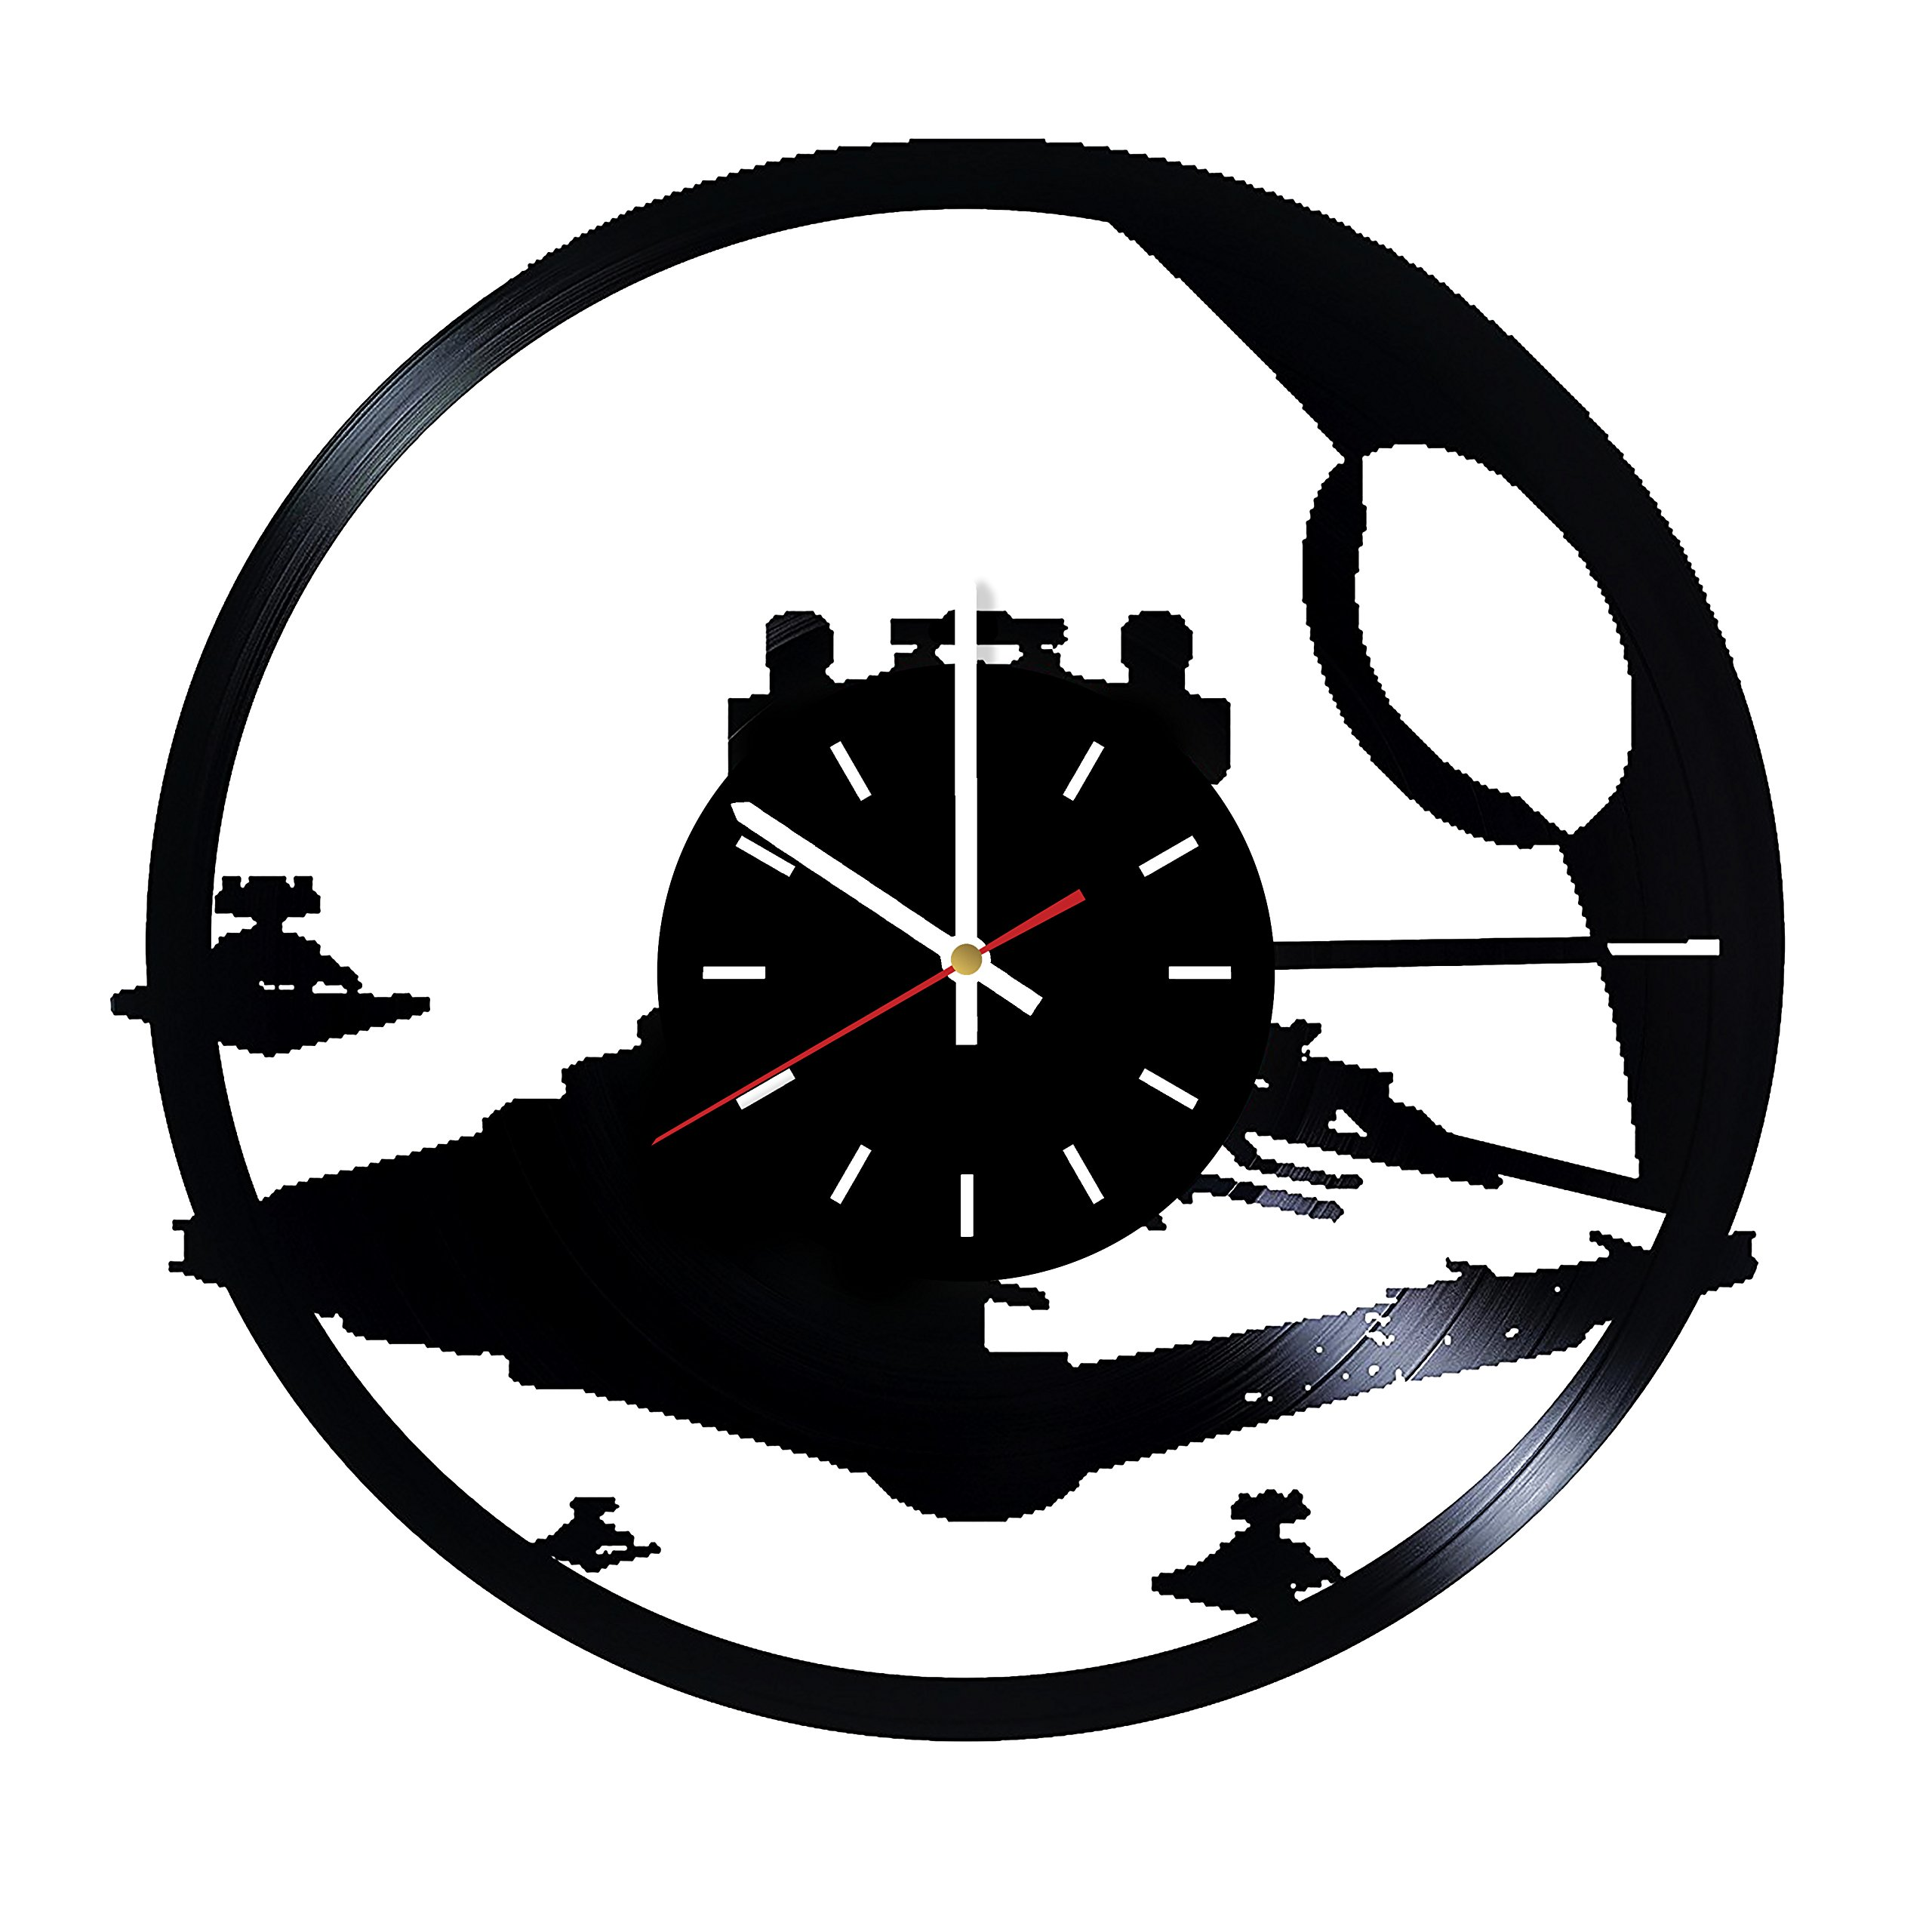 Everyday Arts Star Wars Spaceship Silhouette Design Vinyl Record Wall Clock - Get Unique Bedroom or Garage Wall Decor - Gift Ideas for Friends, Brother - Darth Vader Unique Modern Art